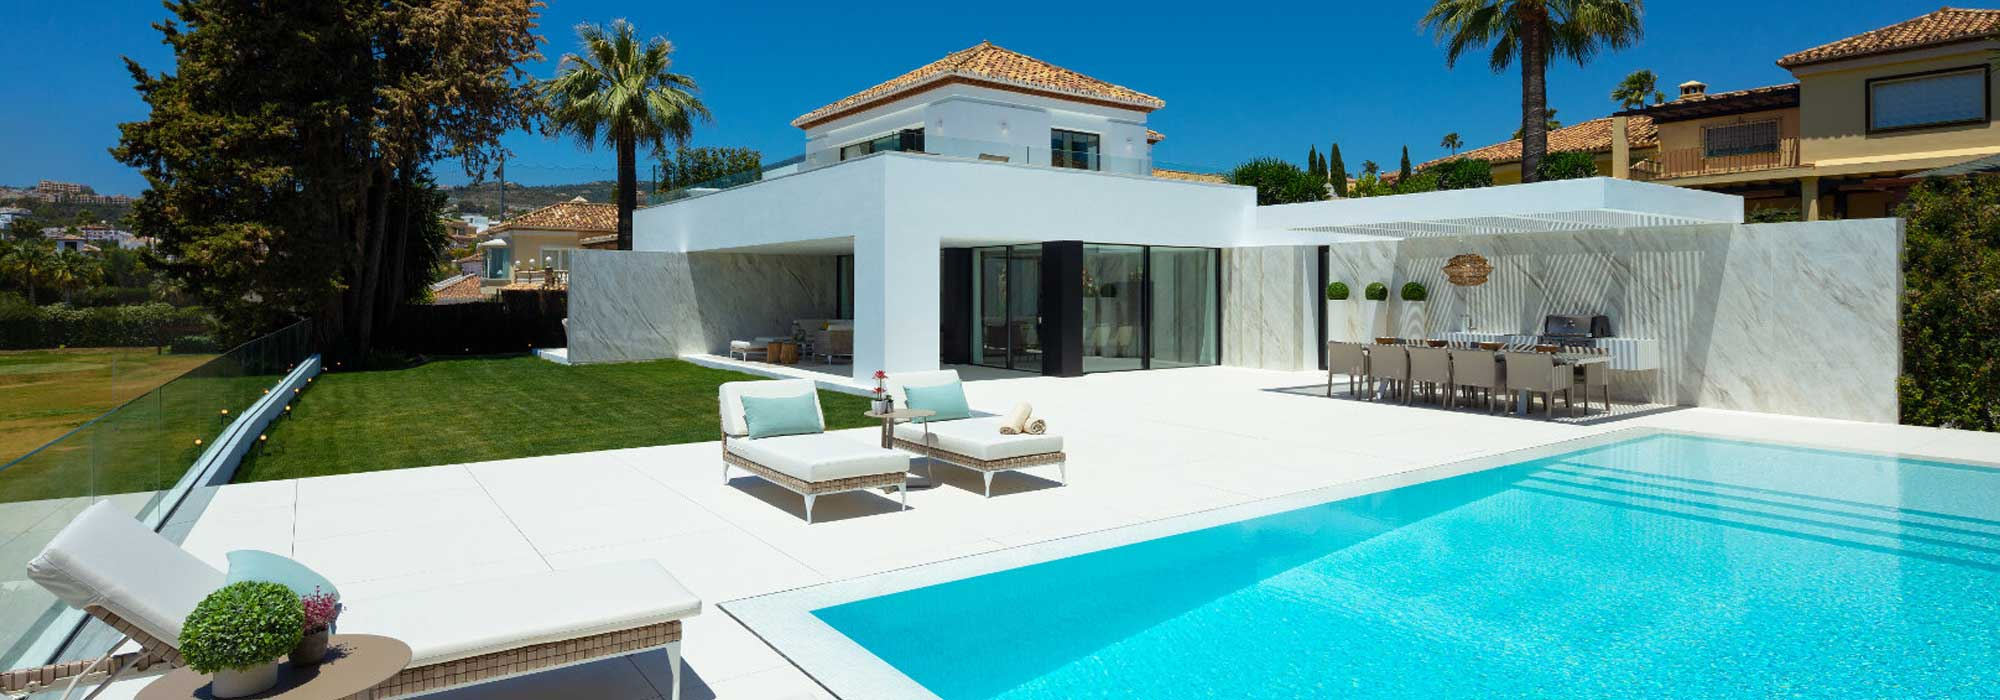 Front line golf Villa with panoramic views, a few steps from Los Naranjos Golf Clubhouse, in Nueva Andalucia Marbella